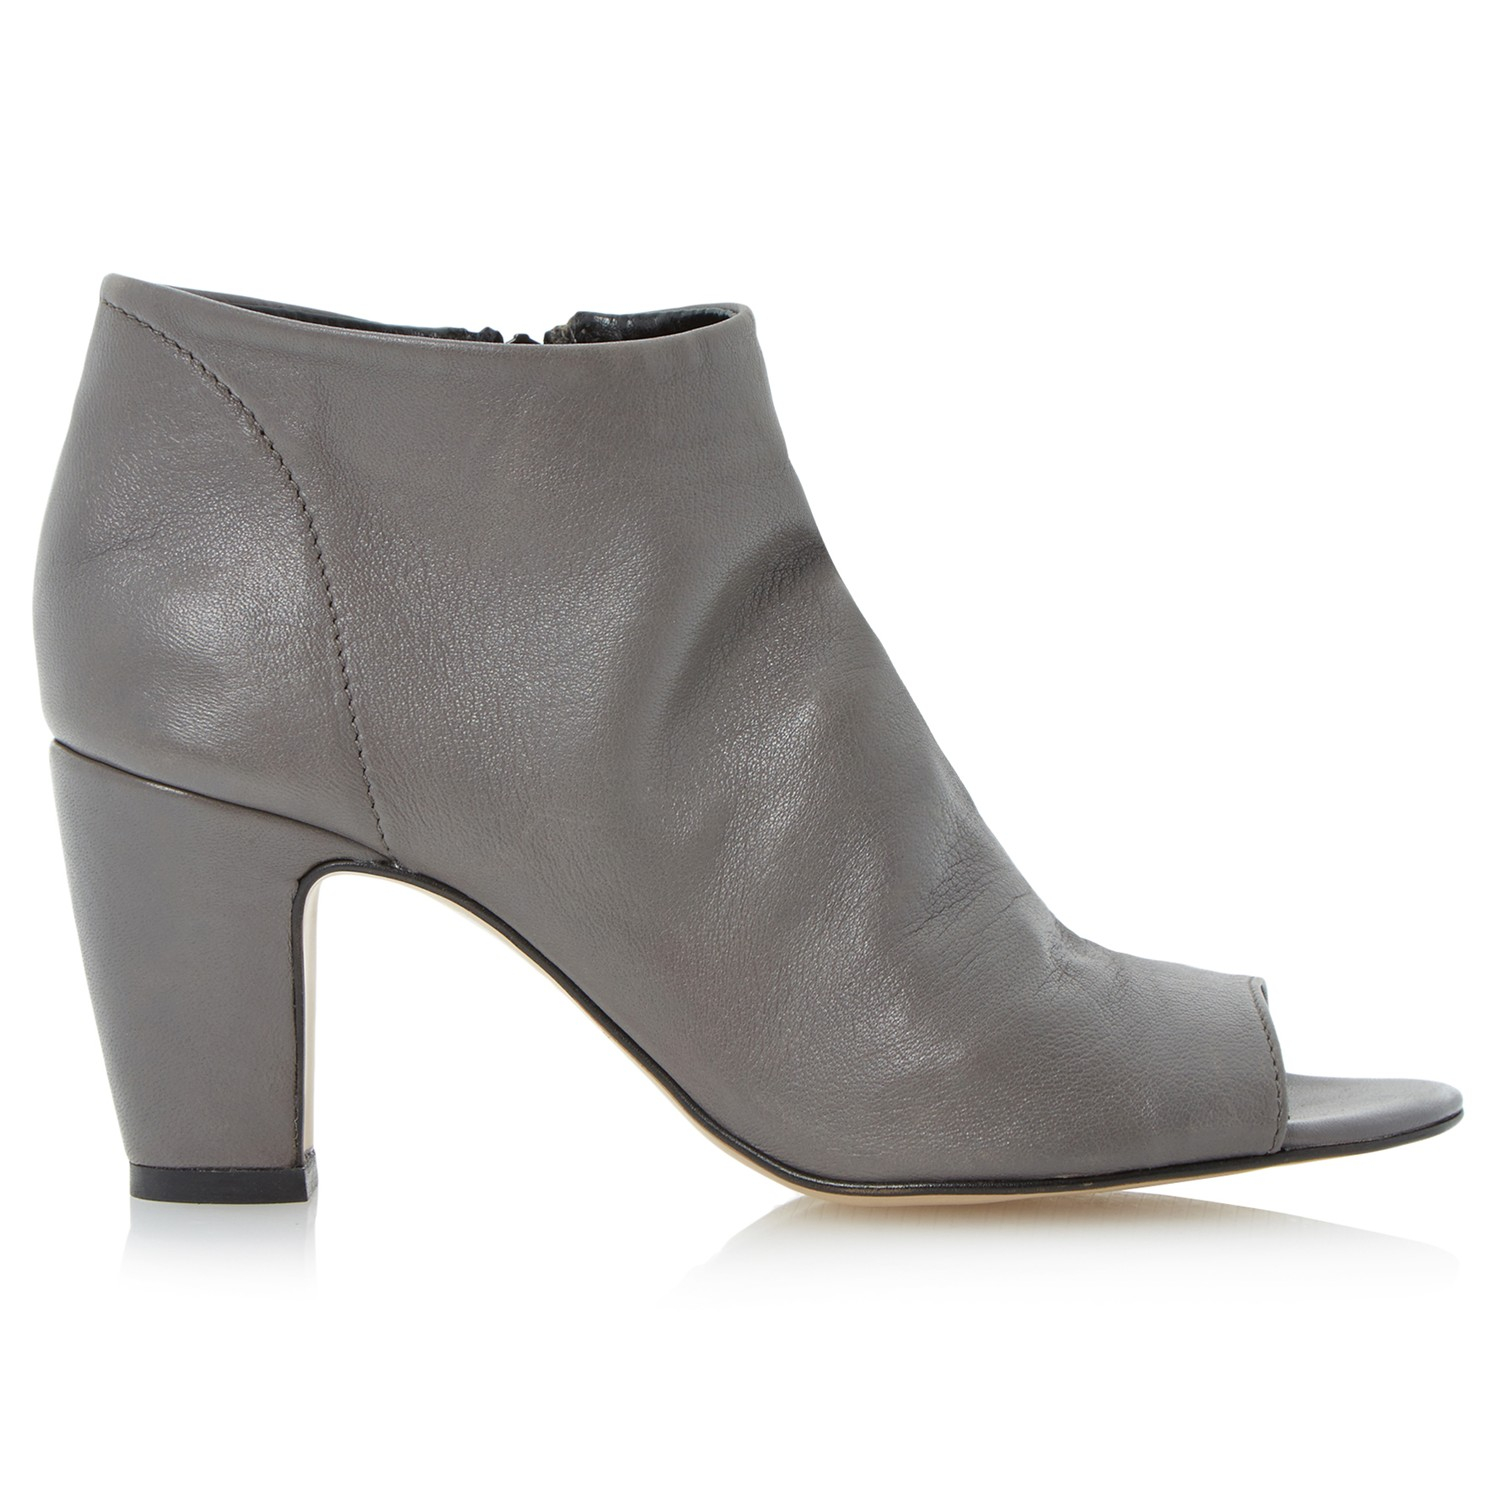 Dune Caitlen Leather Shoe Boots in Black (Grey)